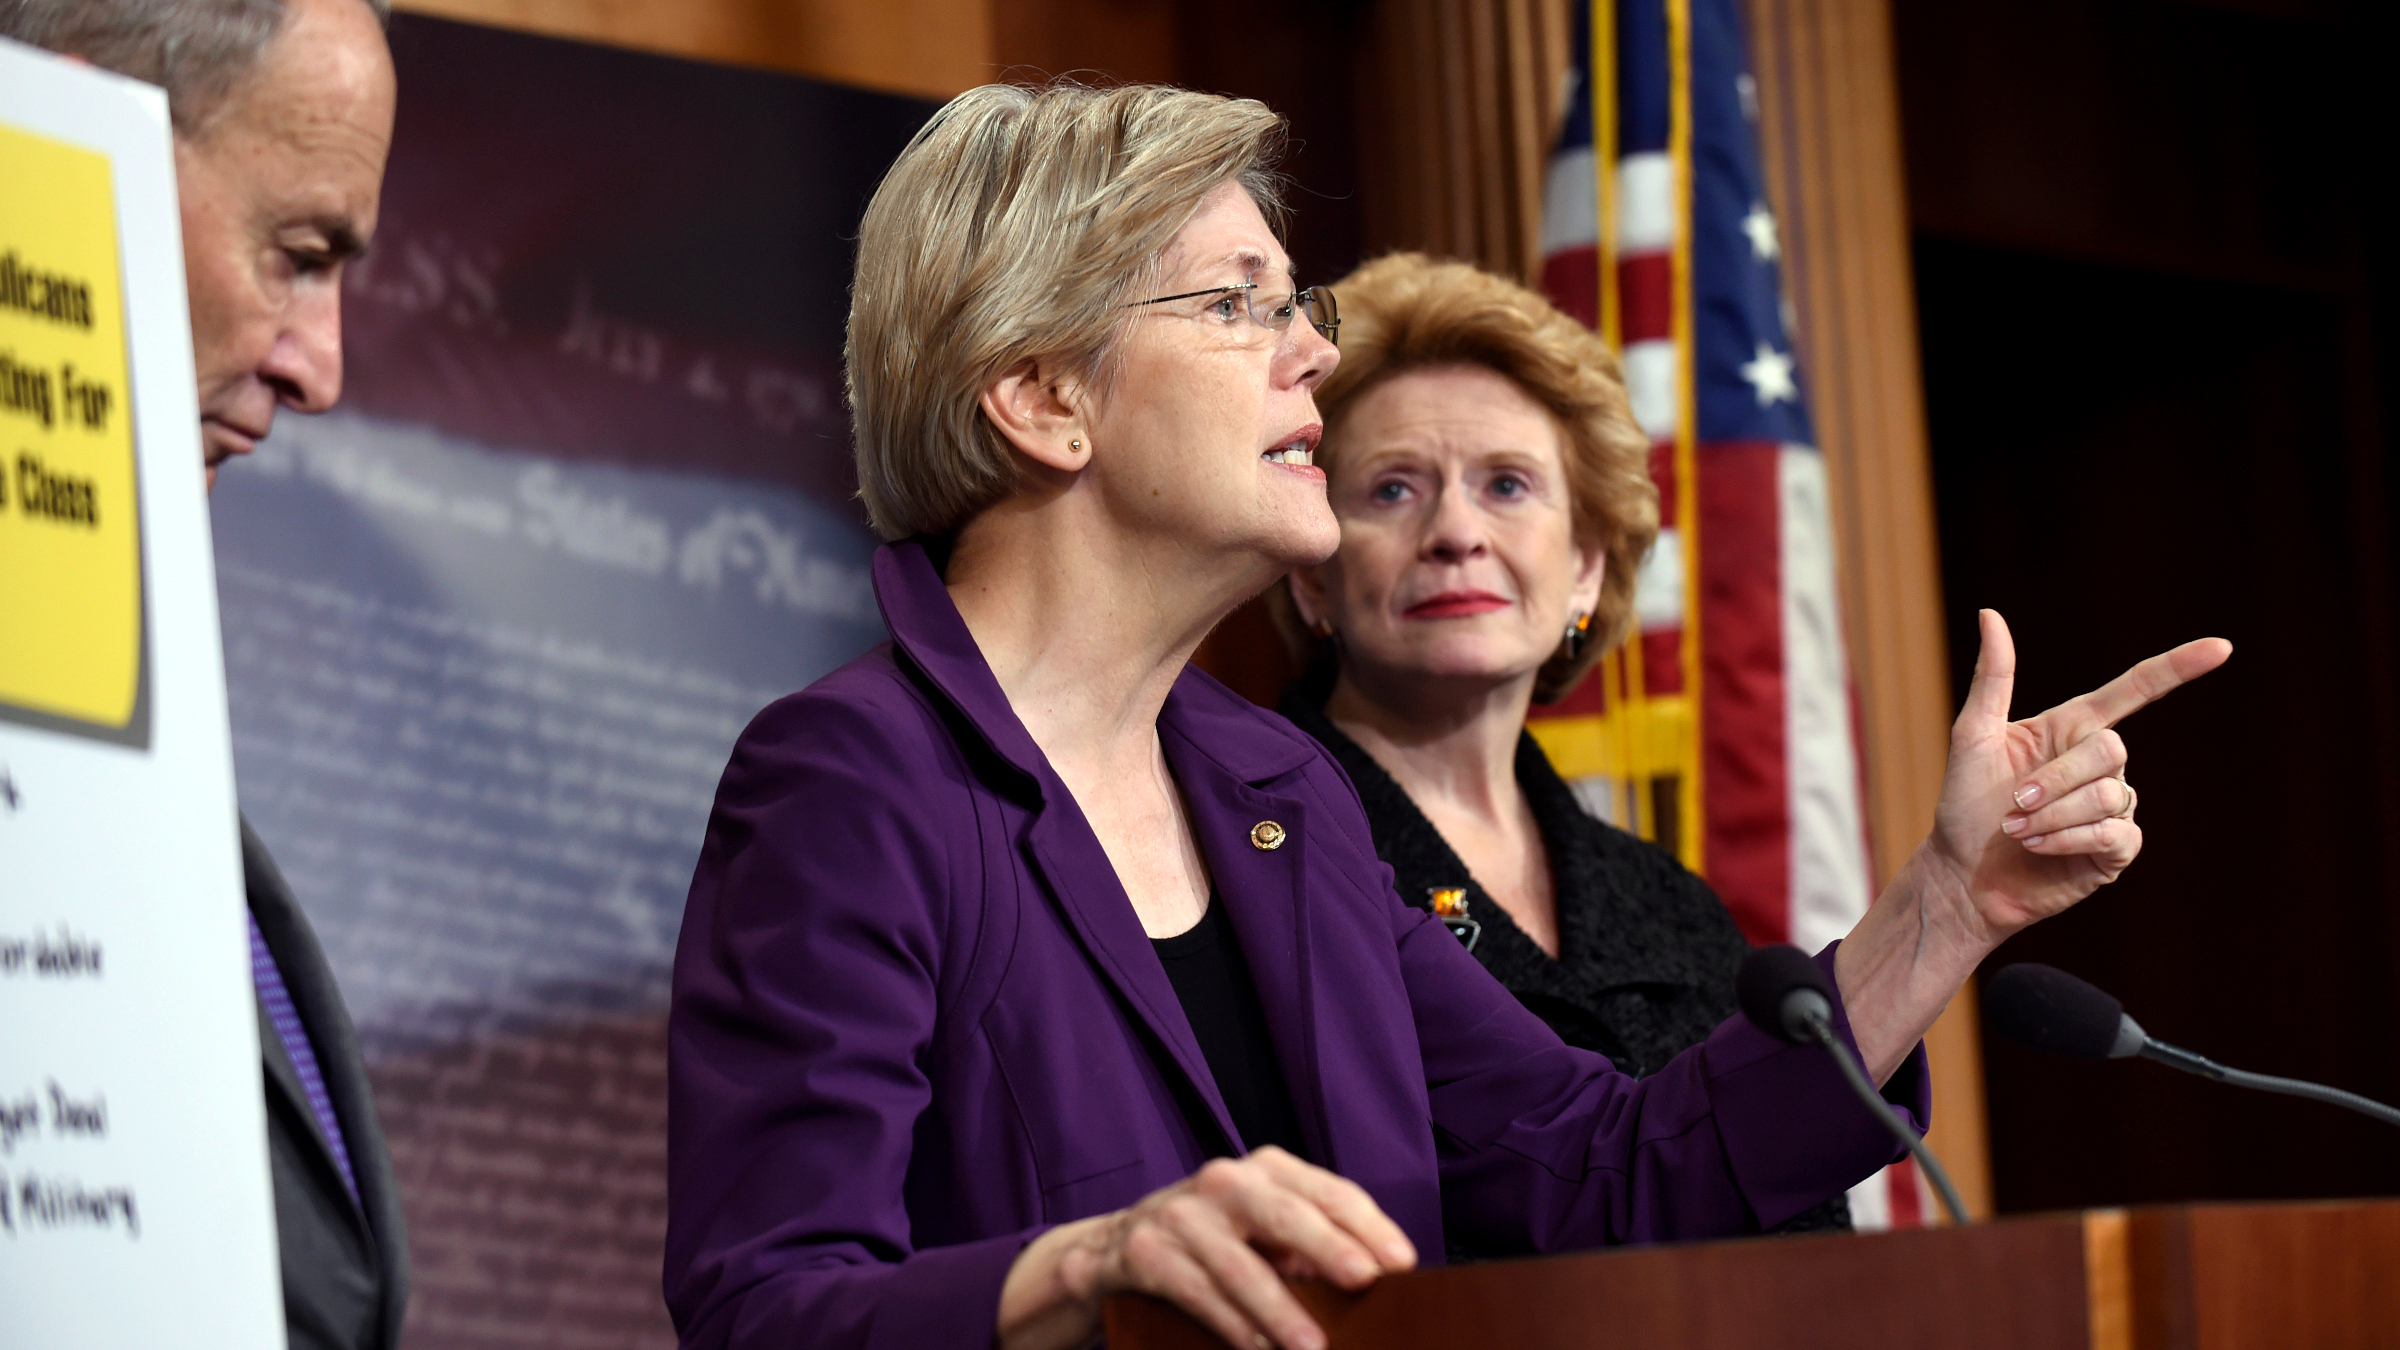 Sen. Elizabeth Warren, D-Mass., center, flanked by Sen. Charles Schumer, D-N.Y., left, and Sen. Debbie Sabenow, D-Mich., right, speaks to reporters on Capitol Hill in Washington, Thursday, July 30, 2015.